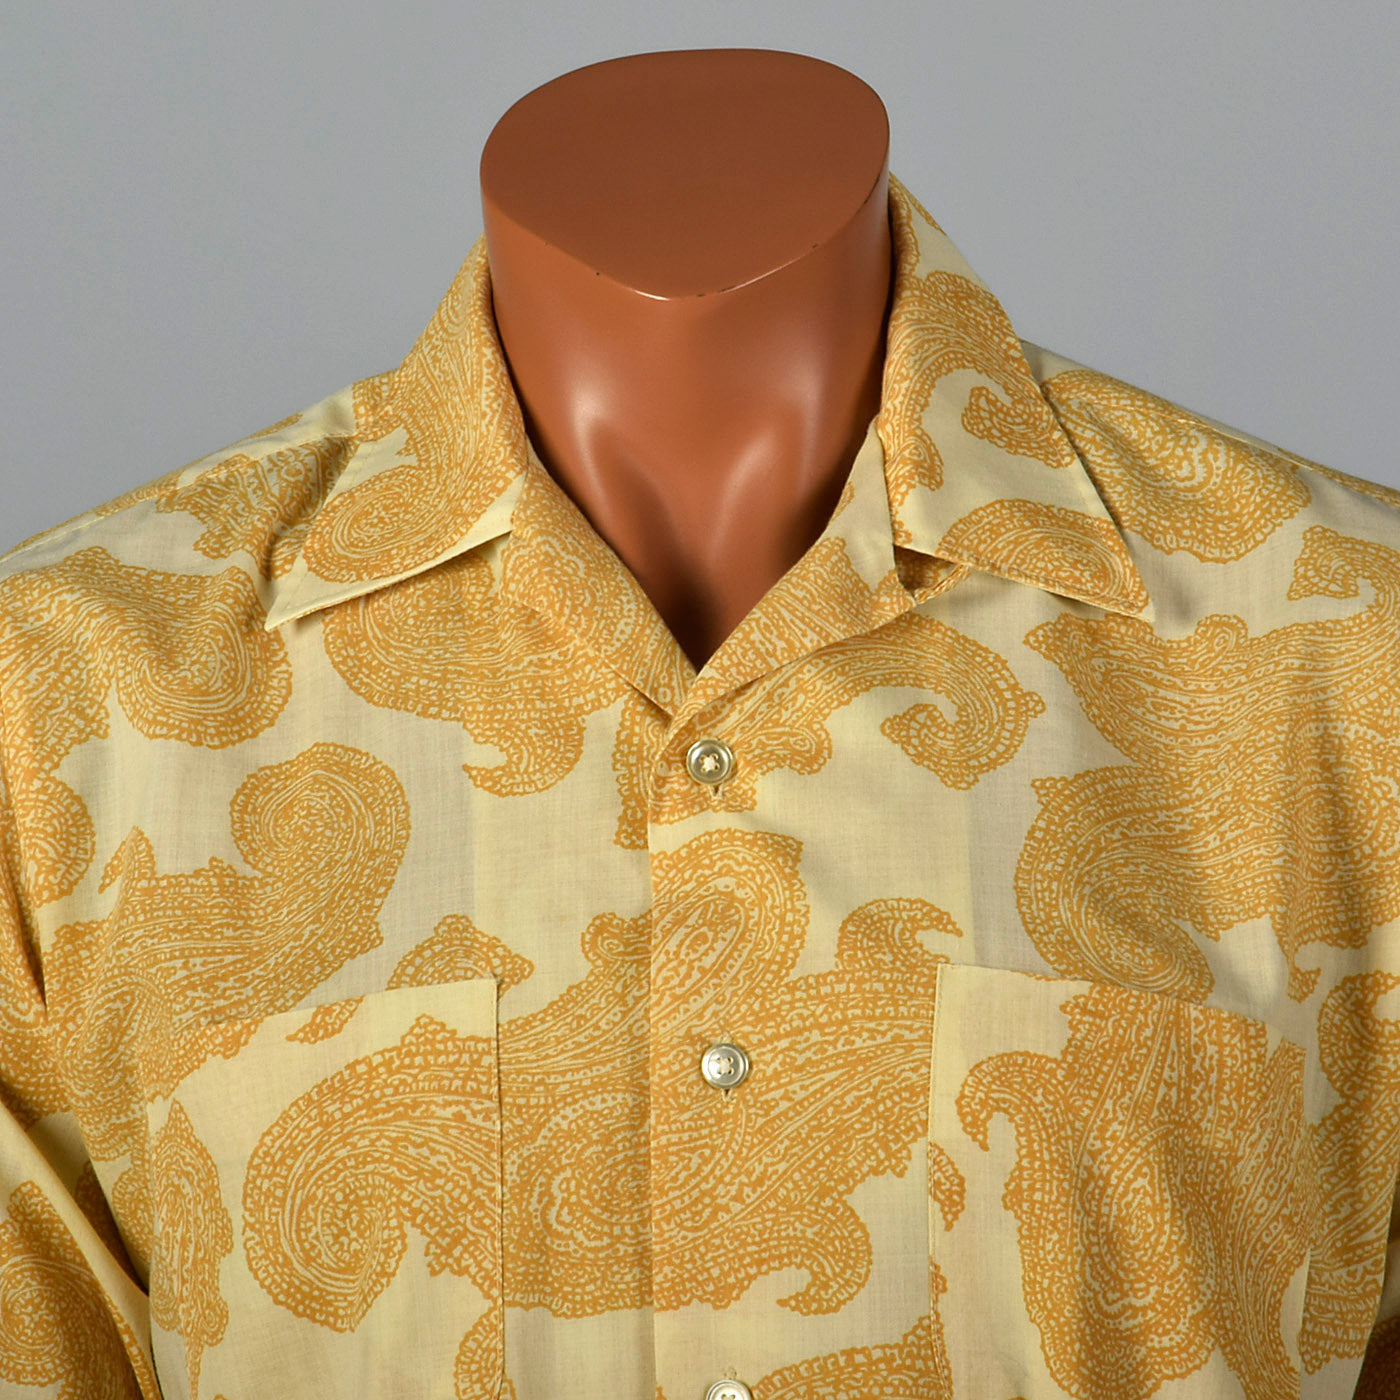 1960s Mens Bohemian Shirt in Paisley Print